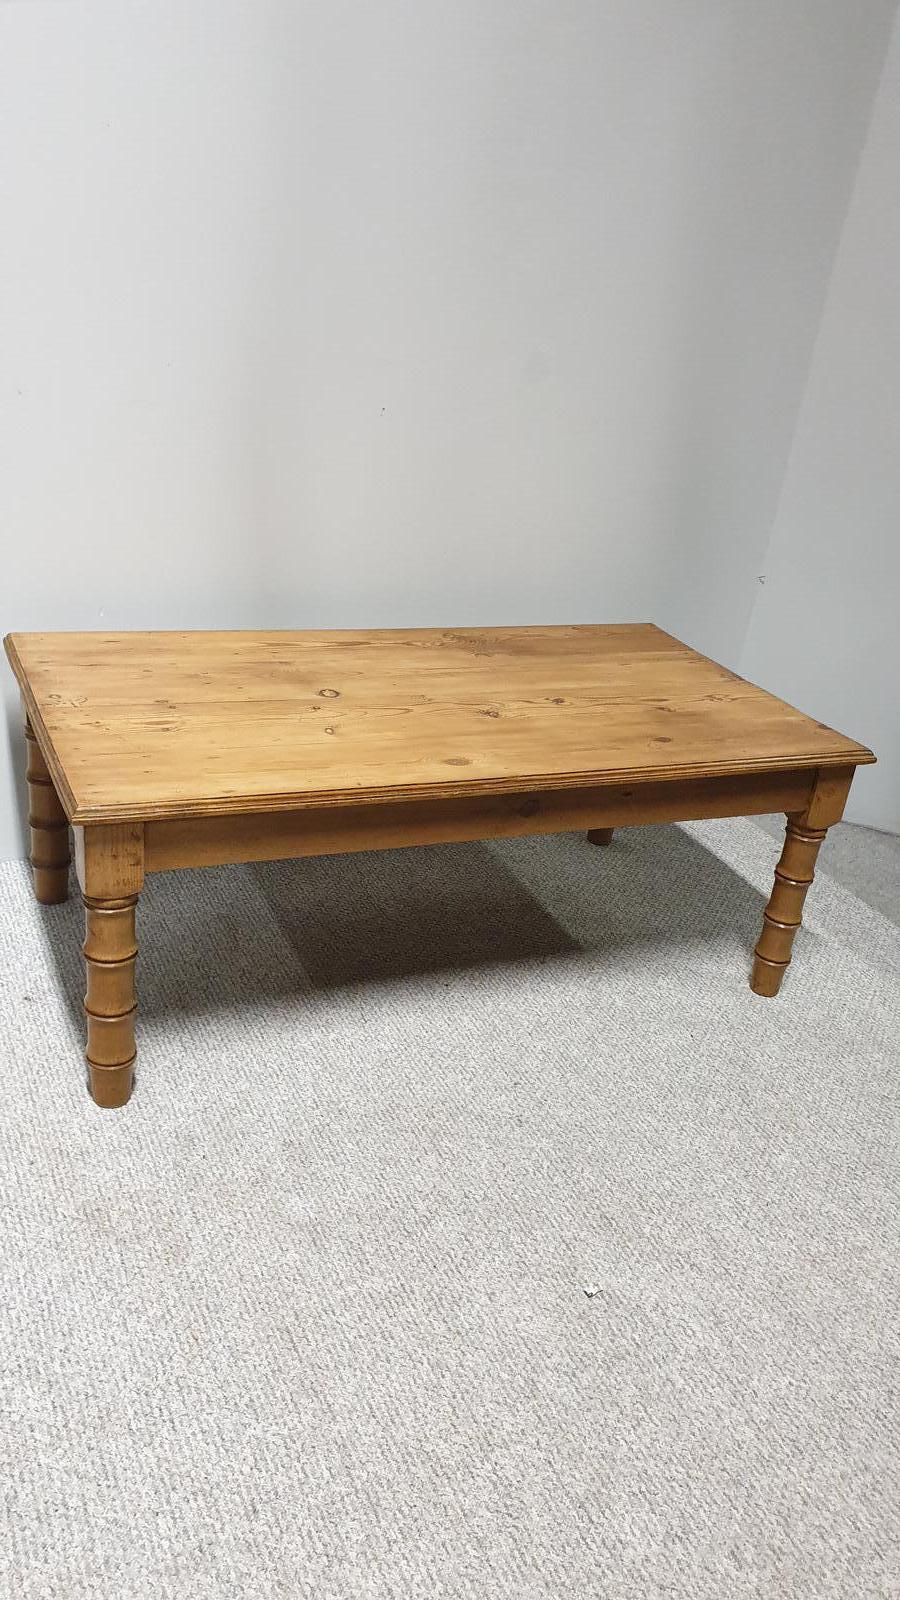 Faux Bamboo Pine Coffee Table (1 of 1)